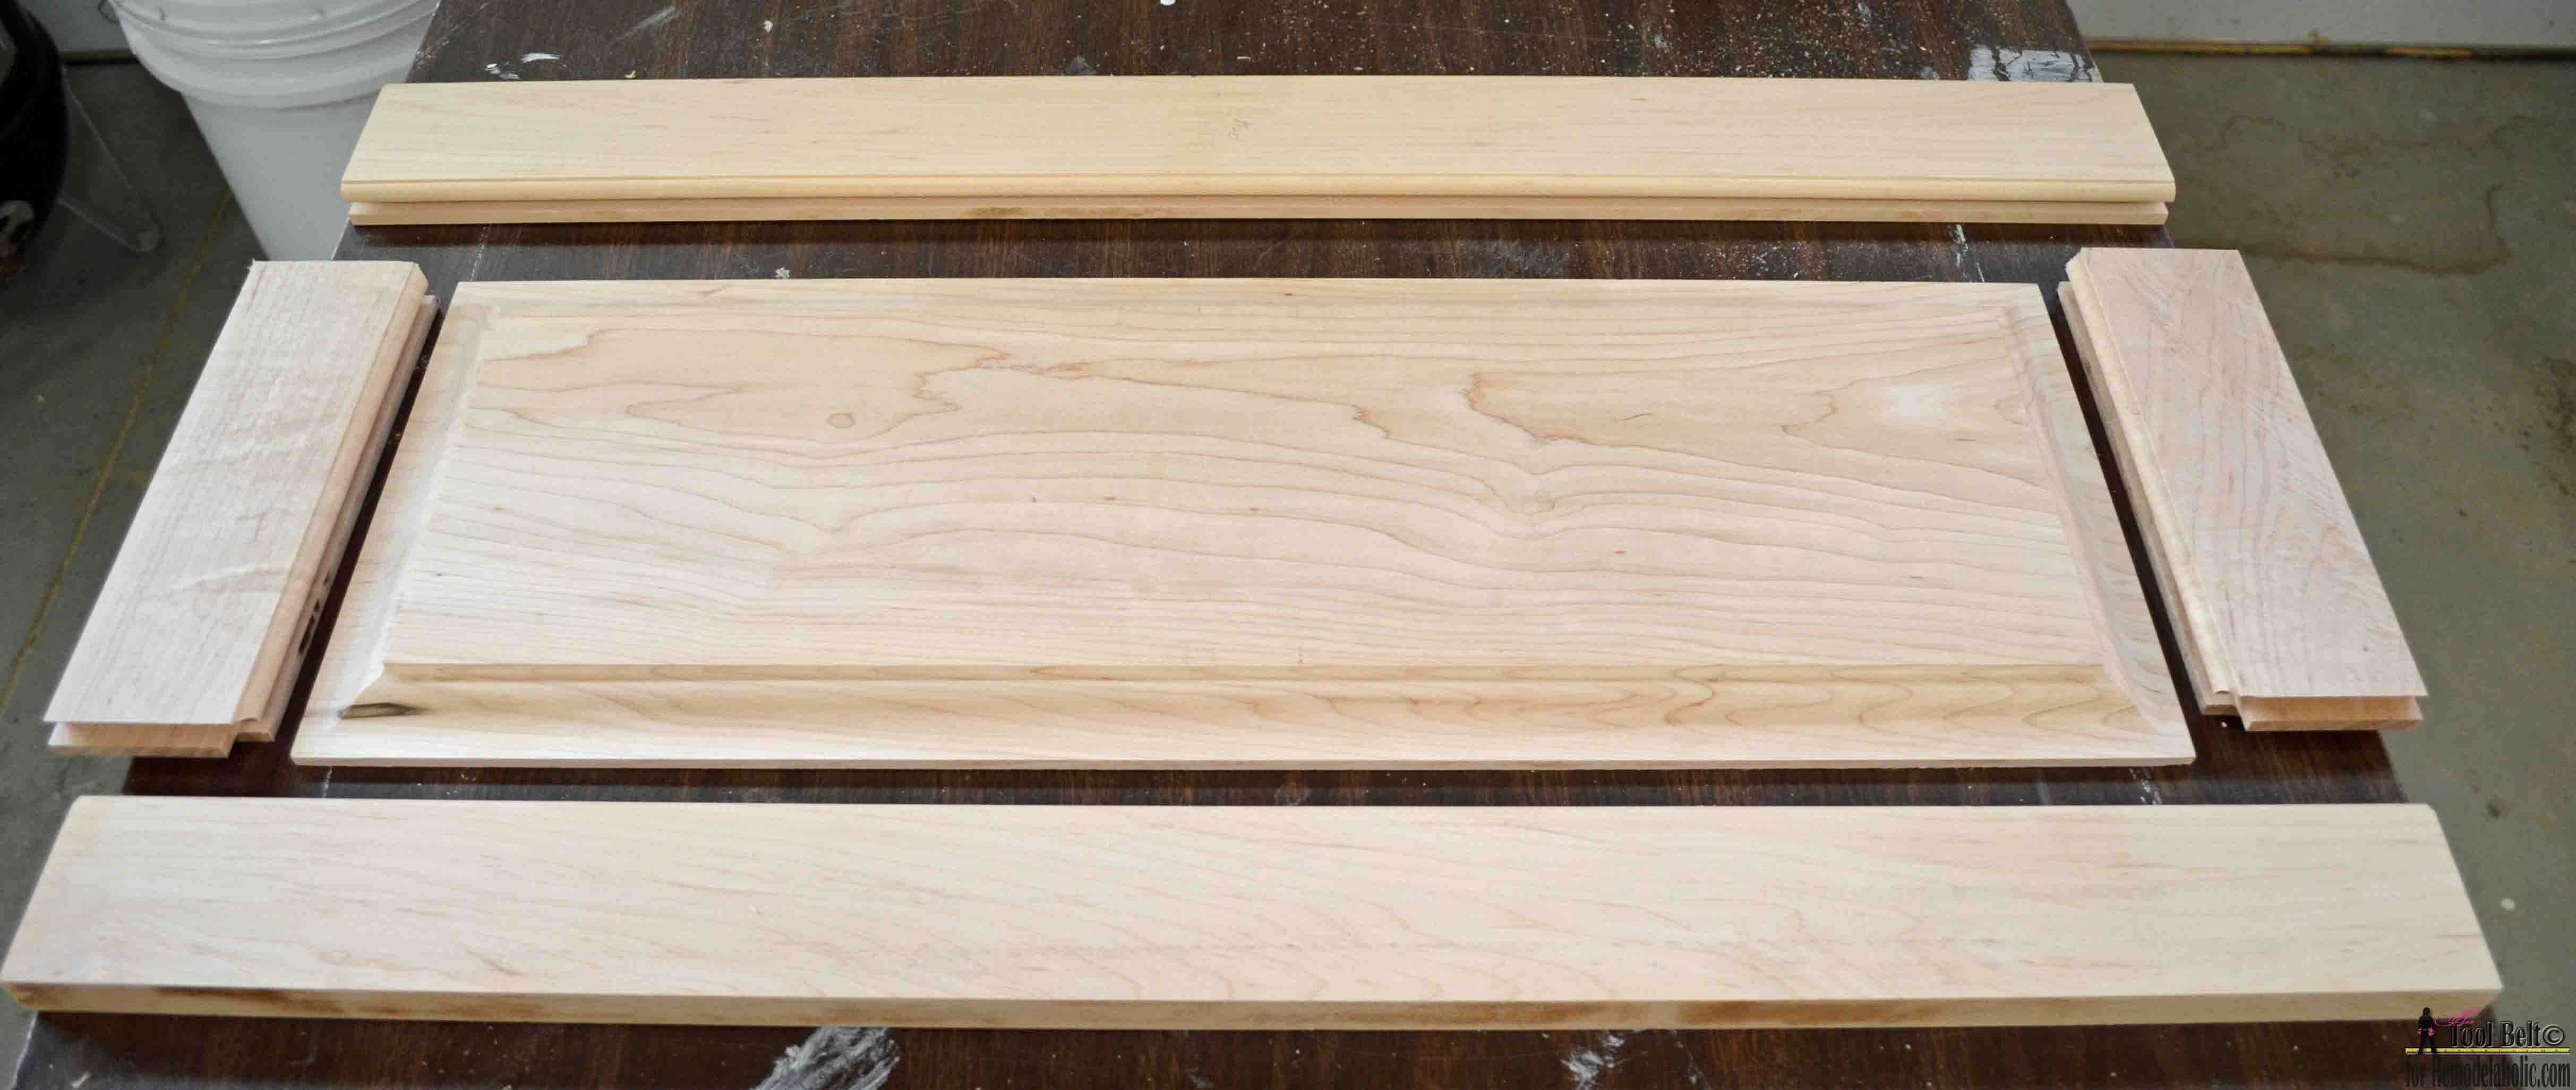 Build Your Own Custom Raised Panel Cabinet Doors For Your Home Or Projects,  Great Tutorial